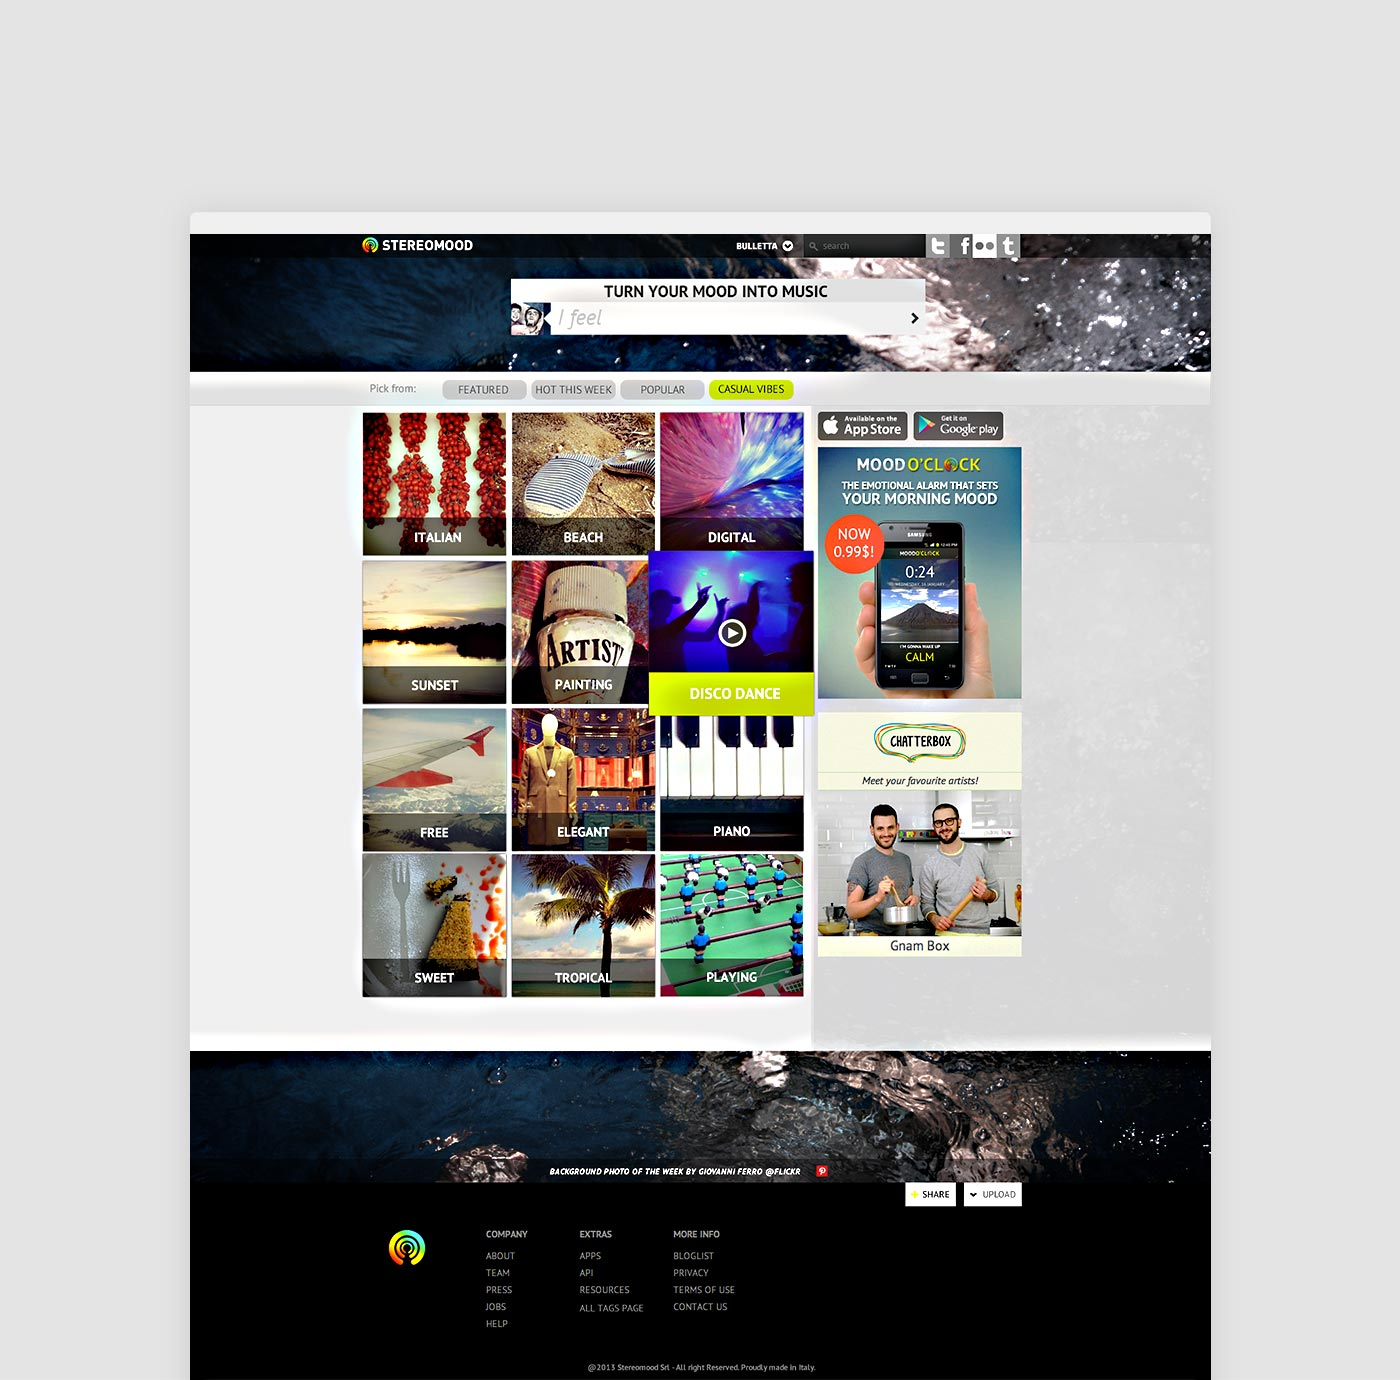 Stereomood homepage in 2013